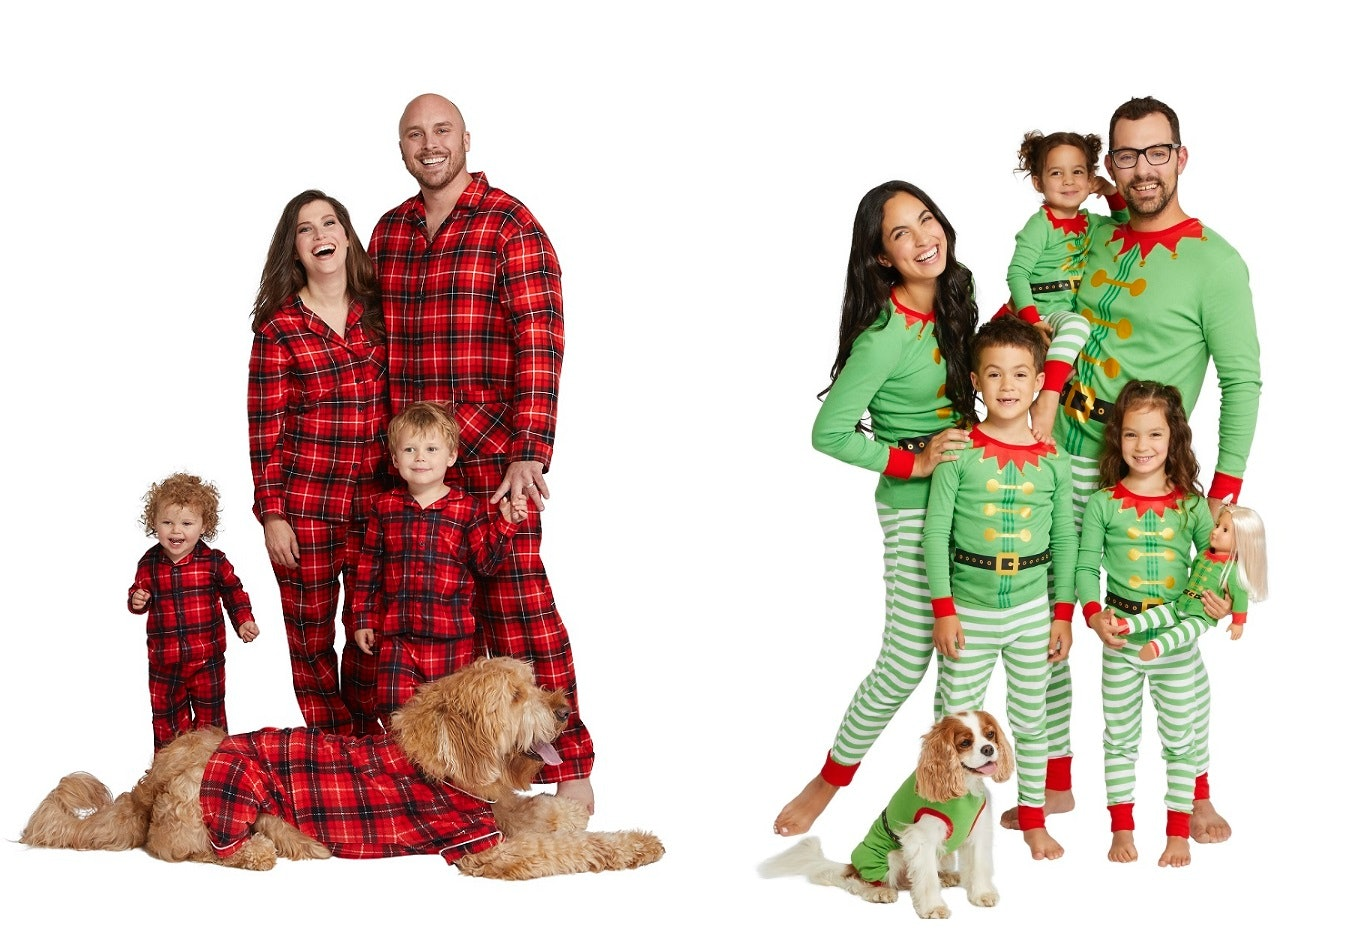 Target s Family   Pet Holiday Pajamas Include Options For Your Whole Crew ad0194662